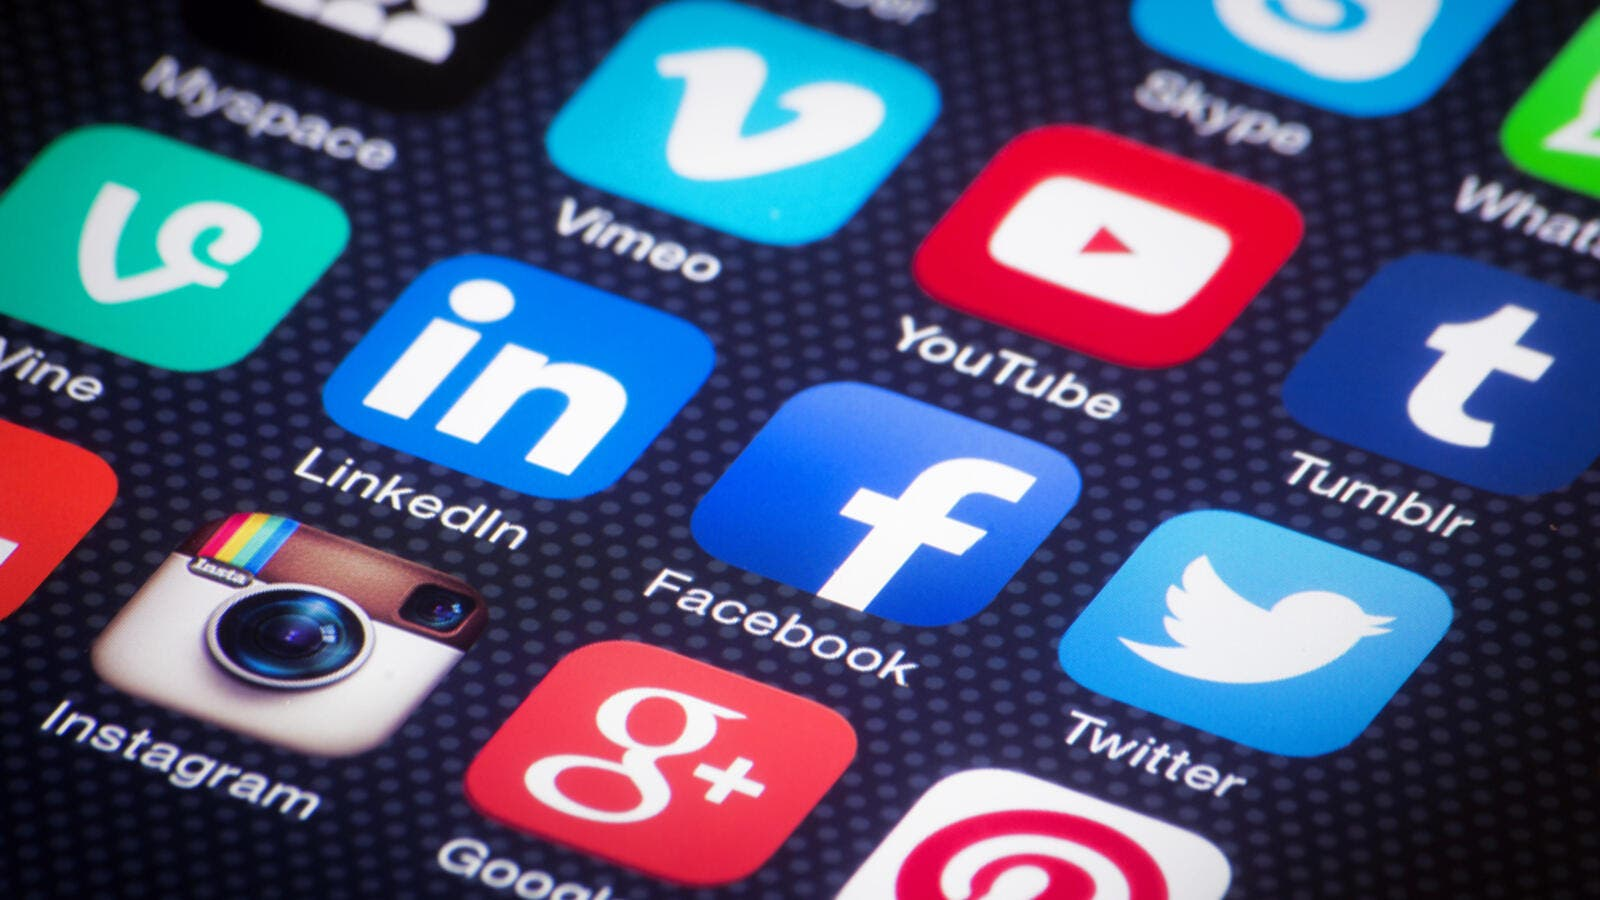 A number of legal risks are involved in the use of social media in the UAE